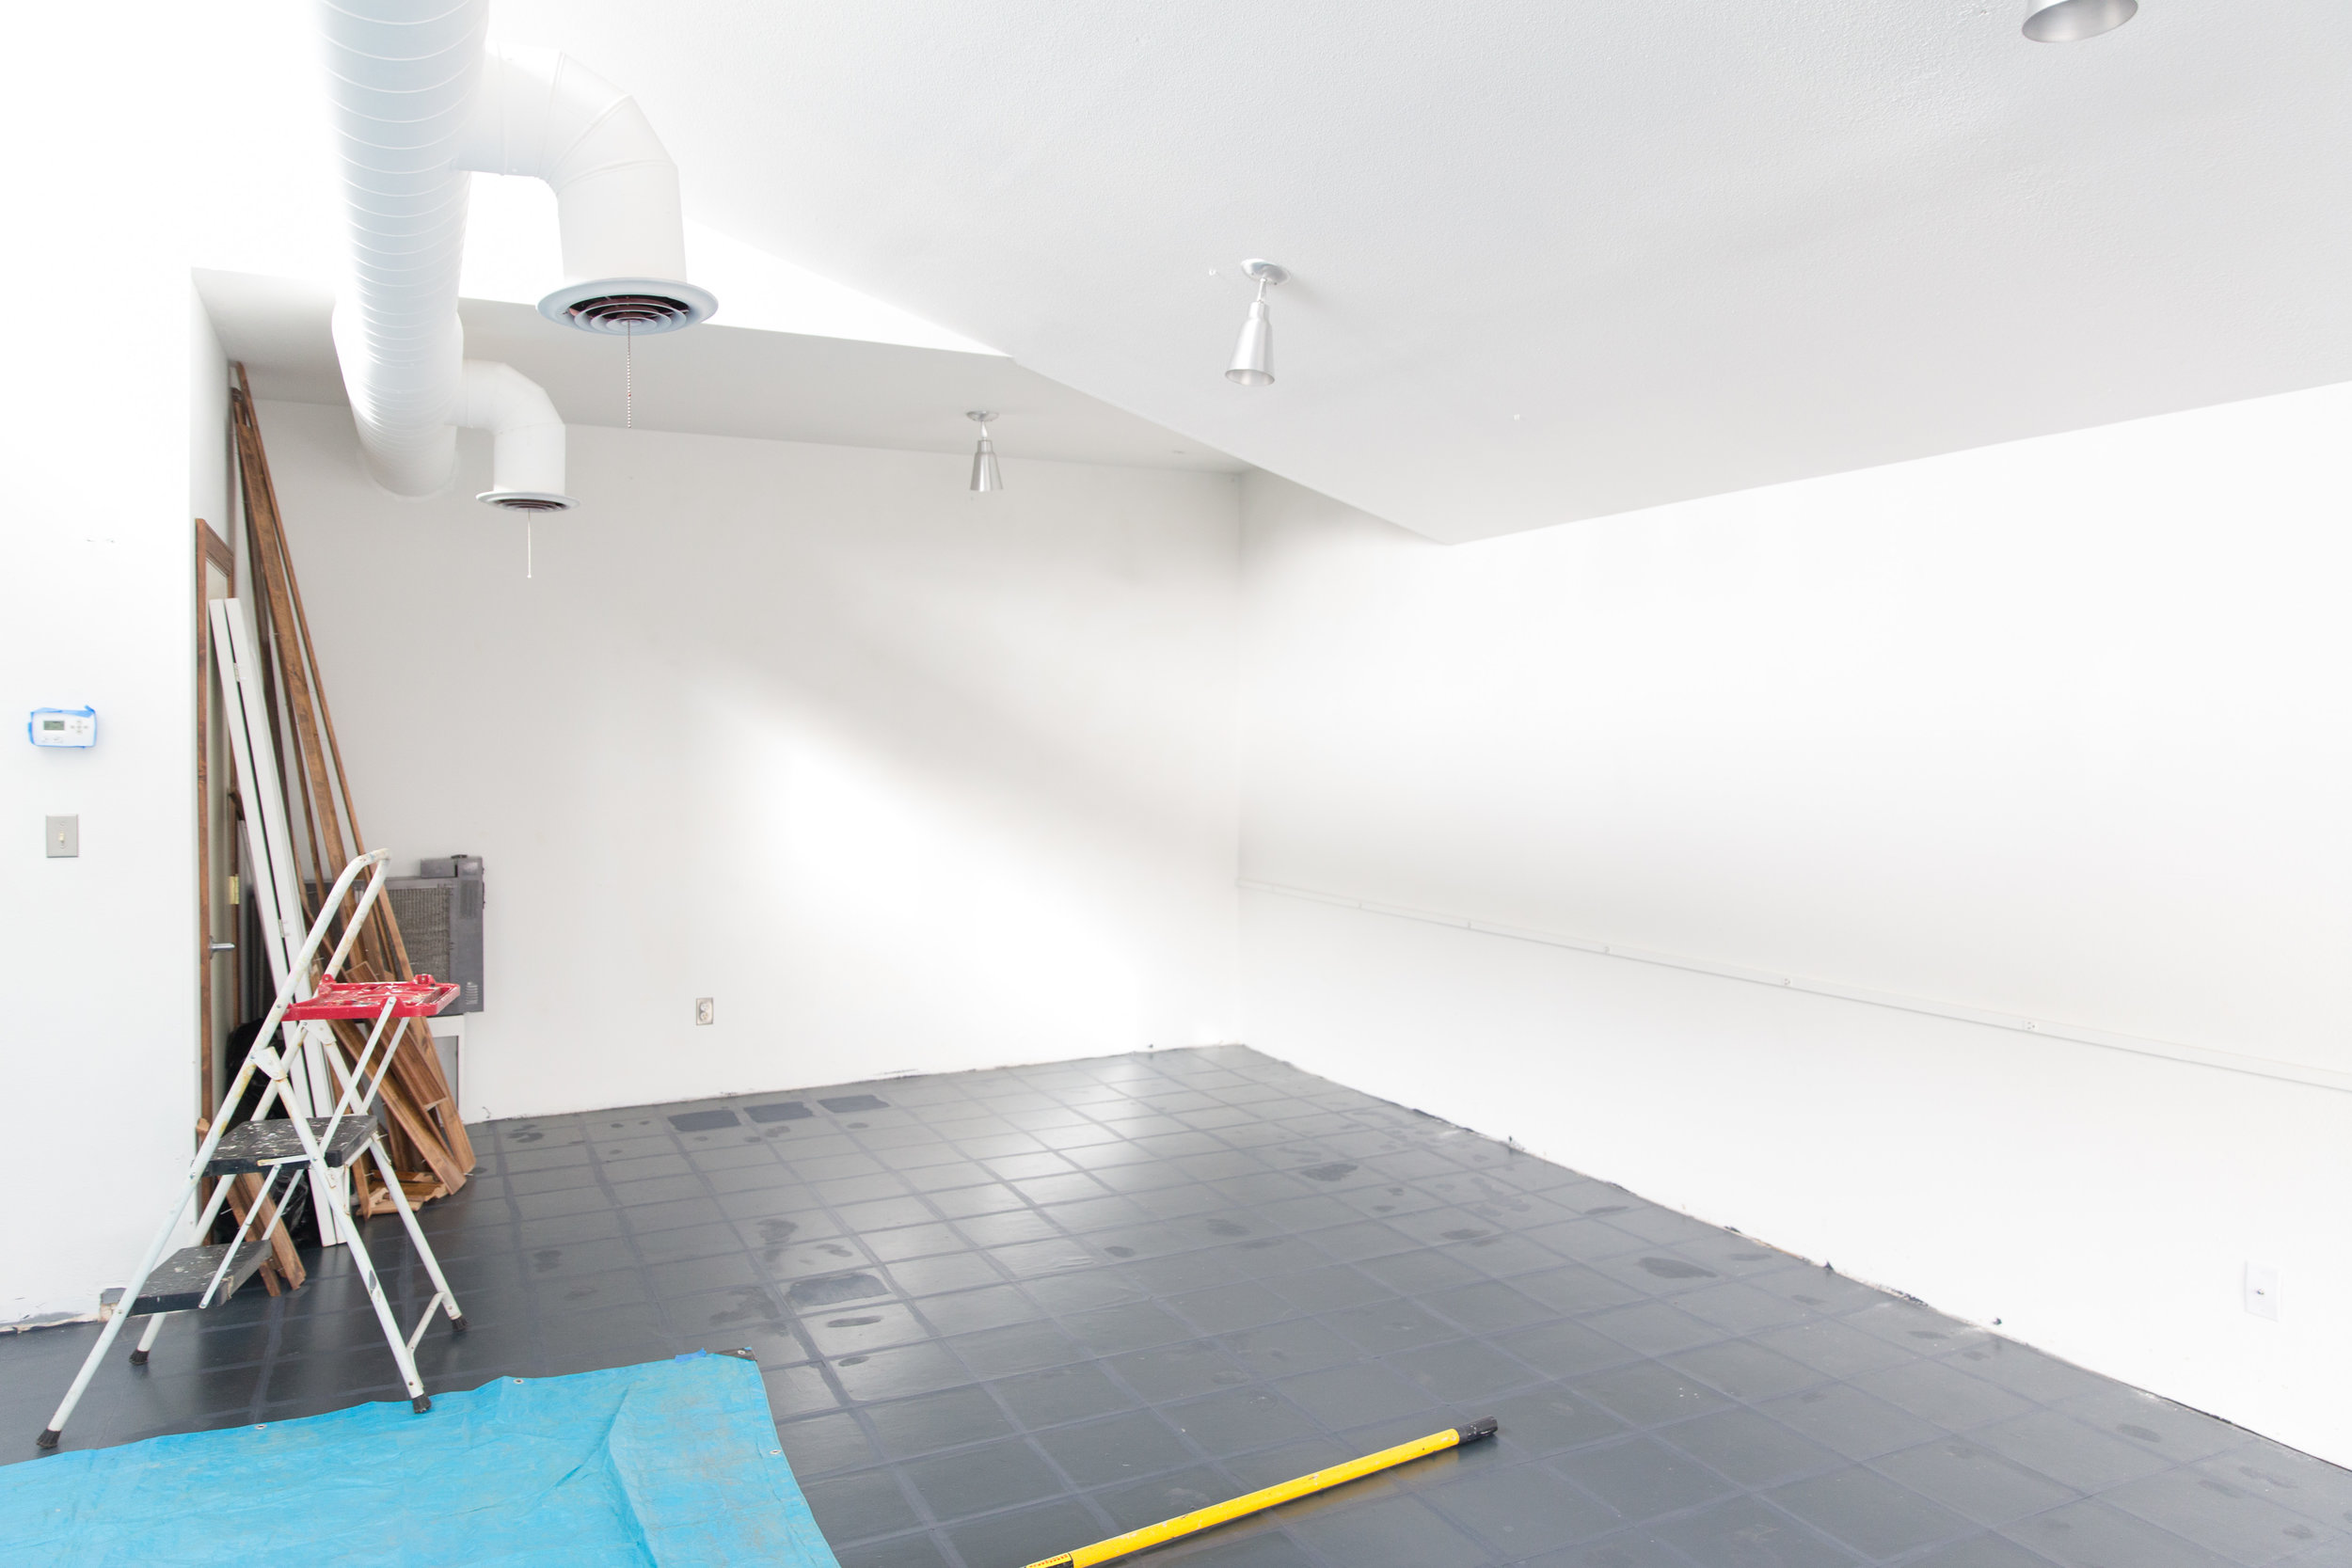 studio-before-and-after-fortitude-and-finn-13.jpg